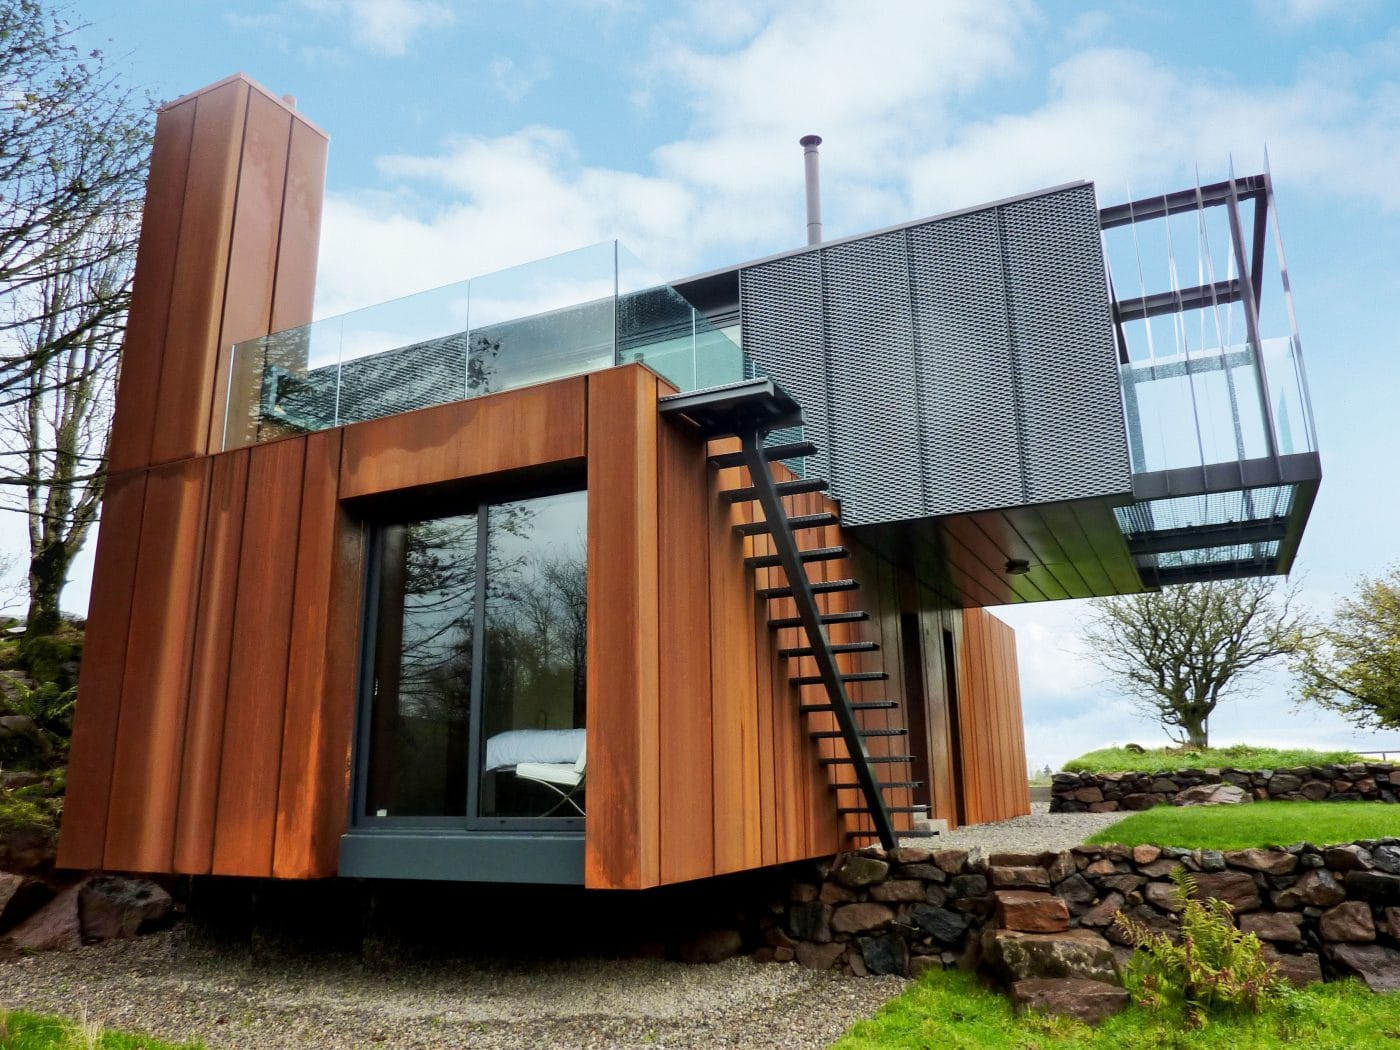 Grand designs shipping container home by patrick bradley for Containers homes plans